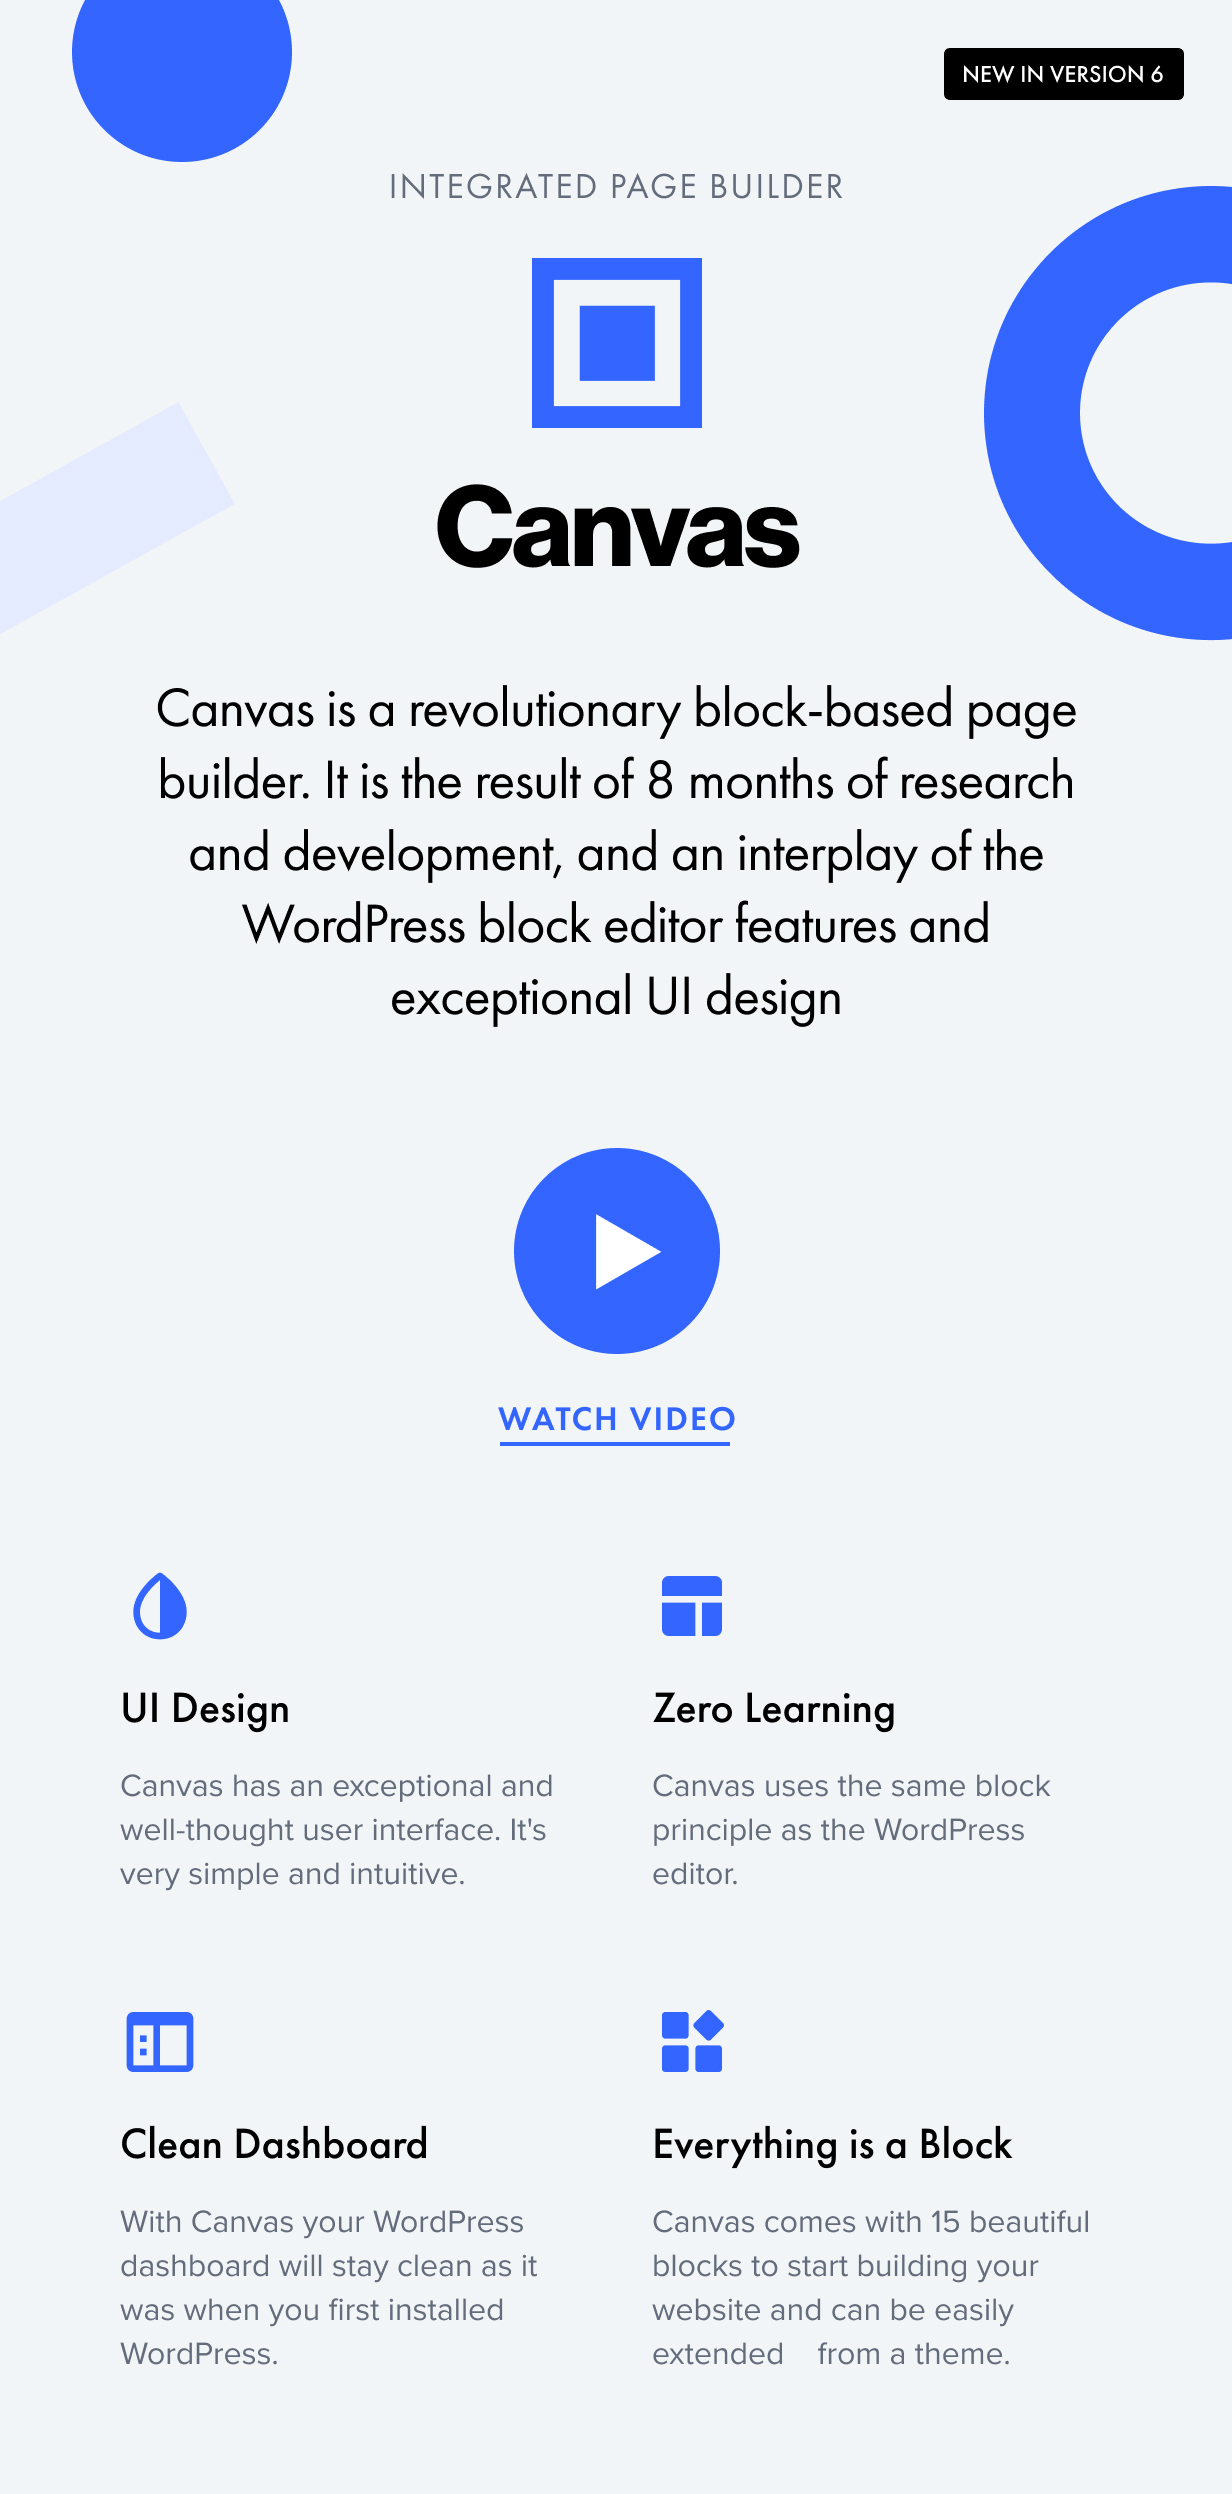 canvas - Authentic - Lifestyle Blog & Magazine WordPress Theme